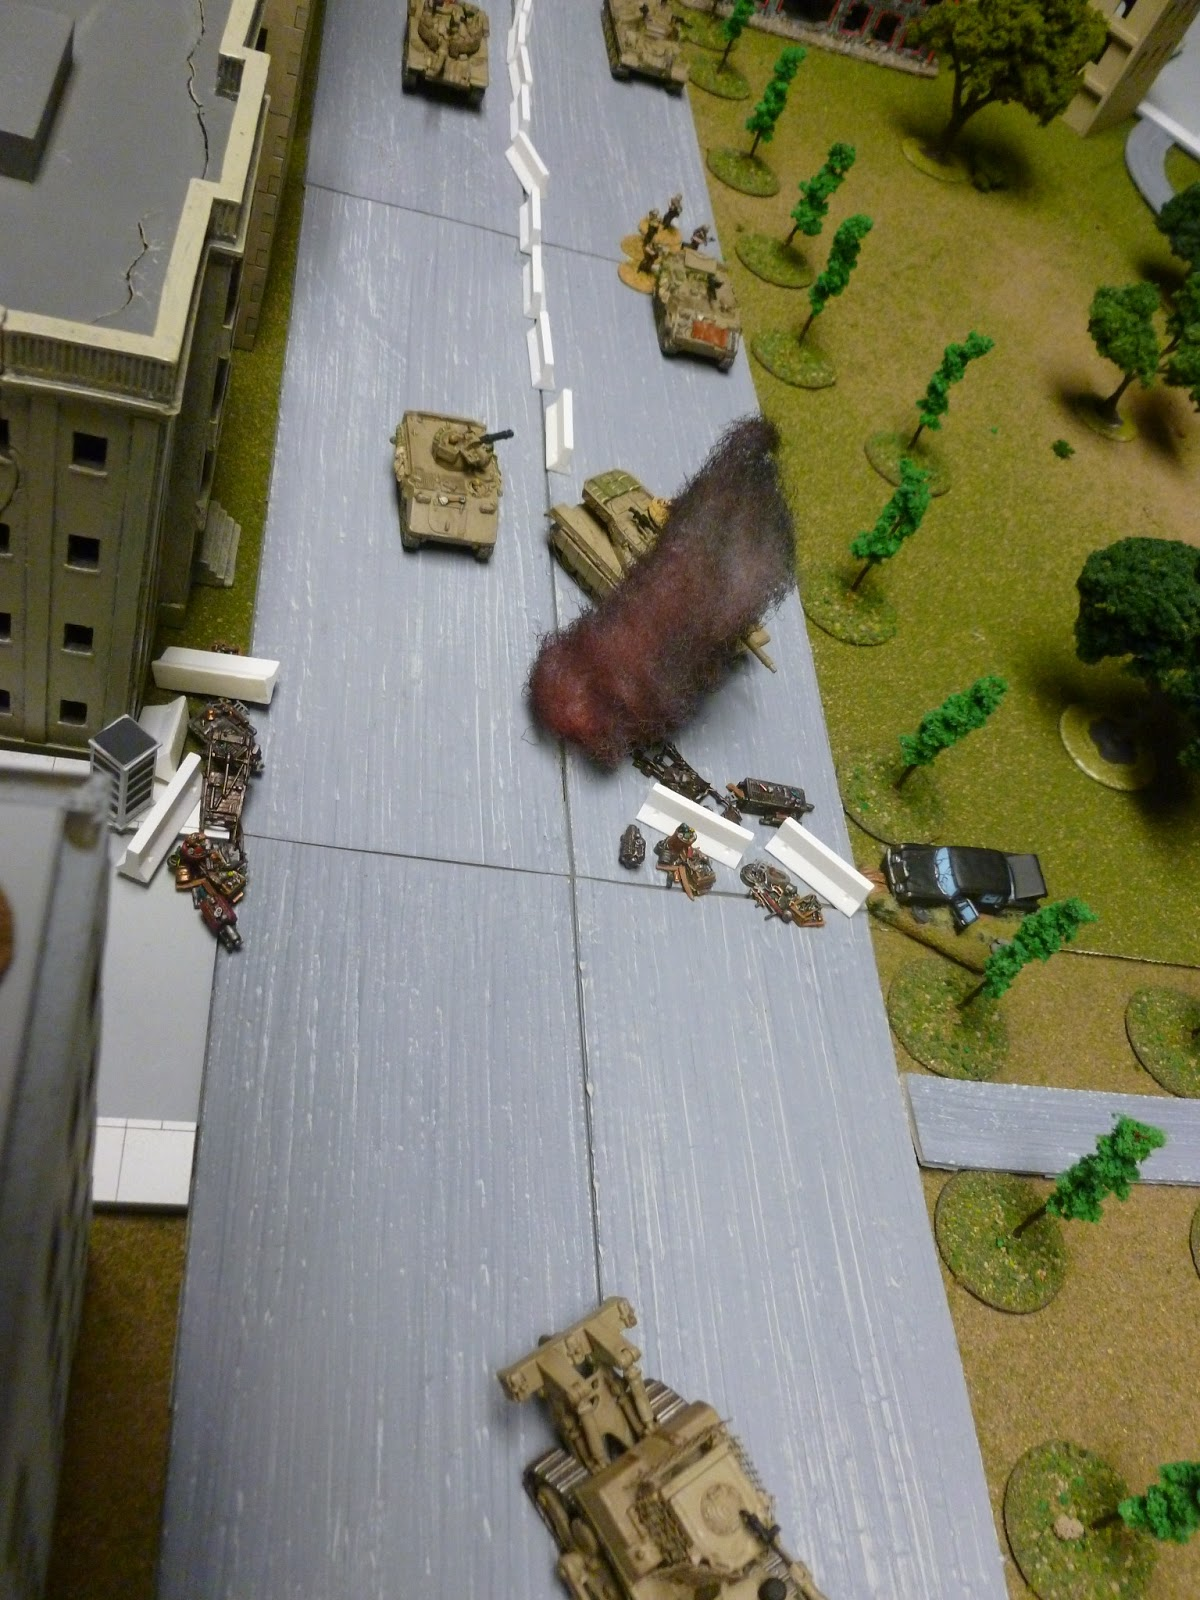 A near-miss with the mortars on the M163 as the D9 lumbers onward.